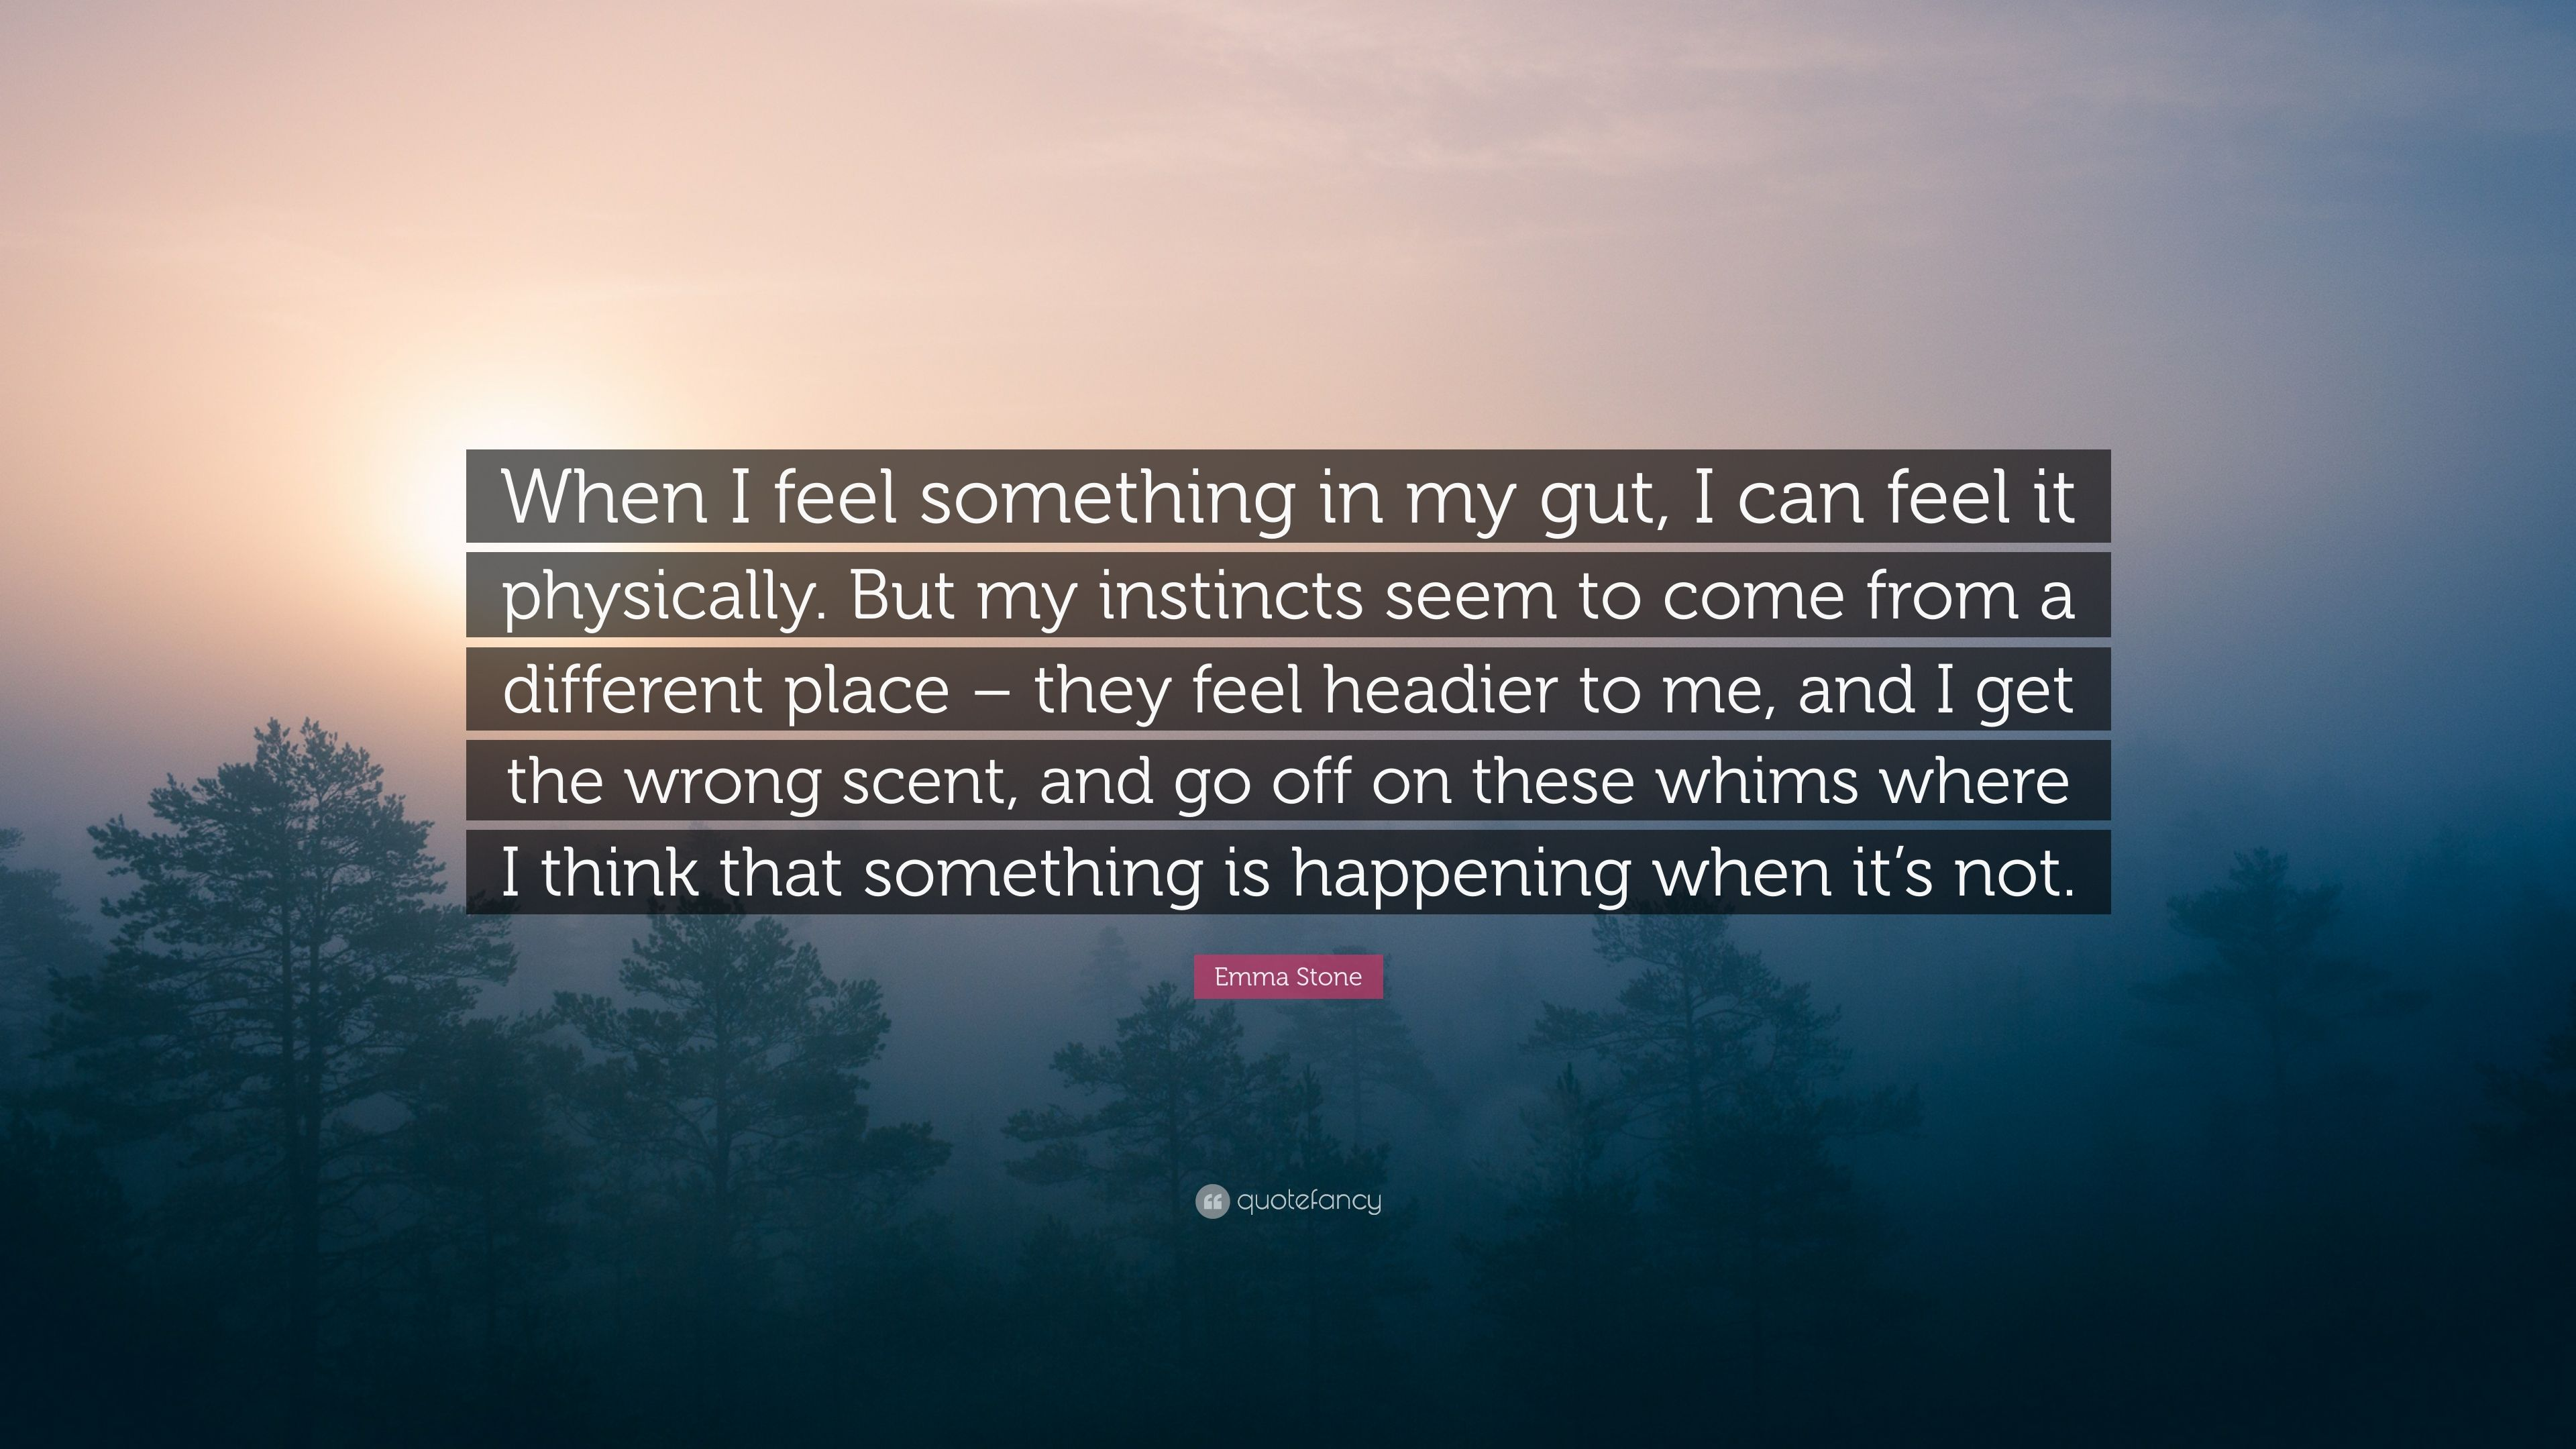 Emma Stone Quote When I Feel Something In My Gut I Can Feel It Physically But My Instincts Seem To Come From A Different Place They F 7 Wallpapers Quotefancy